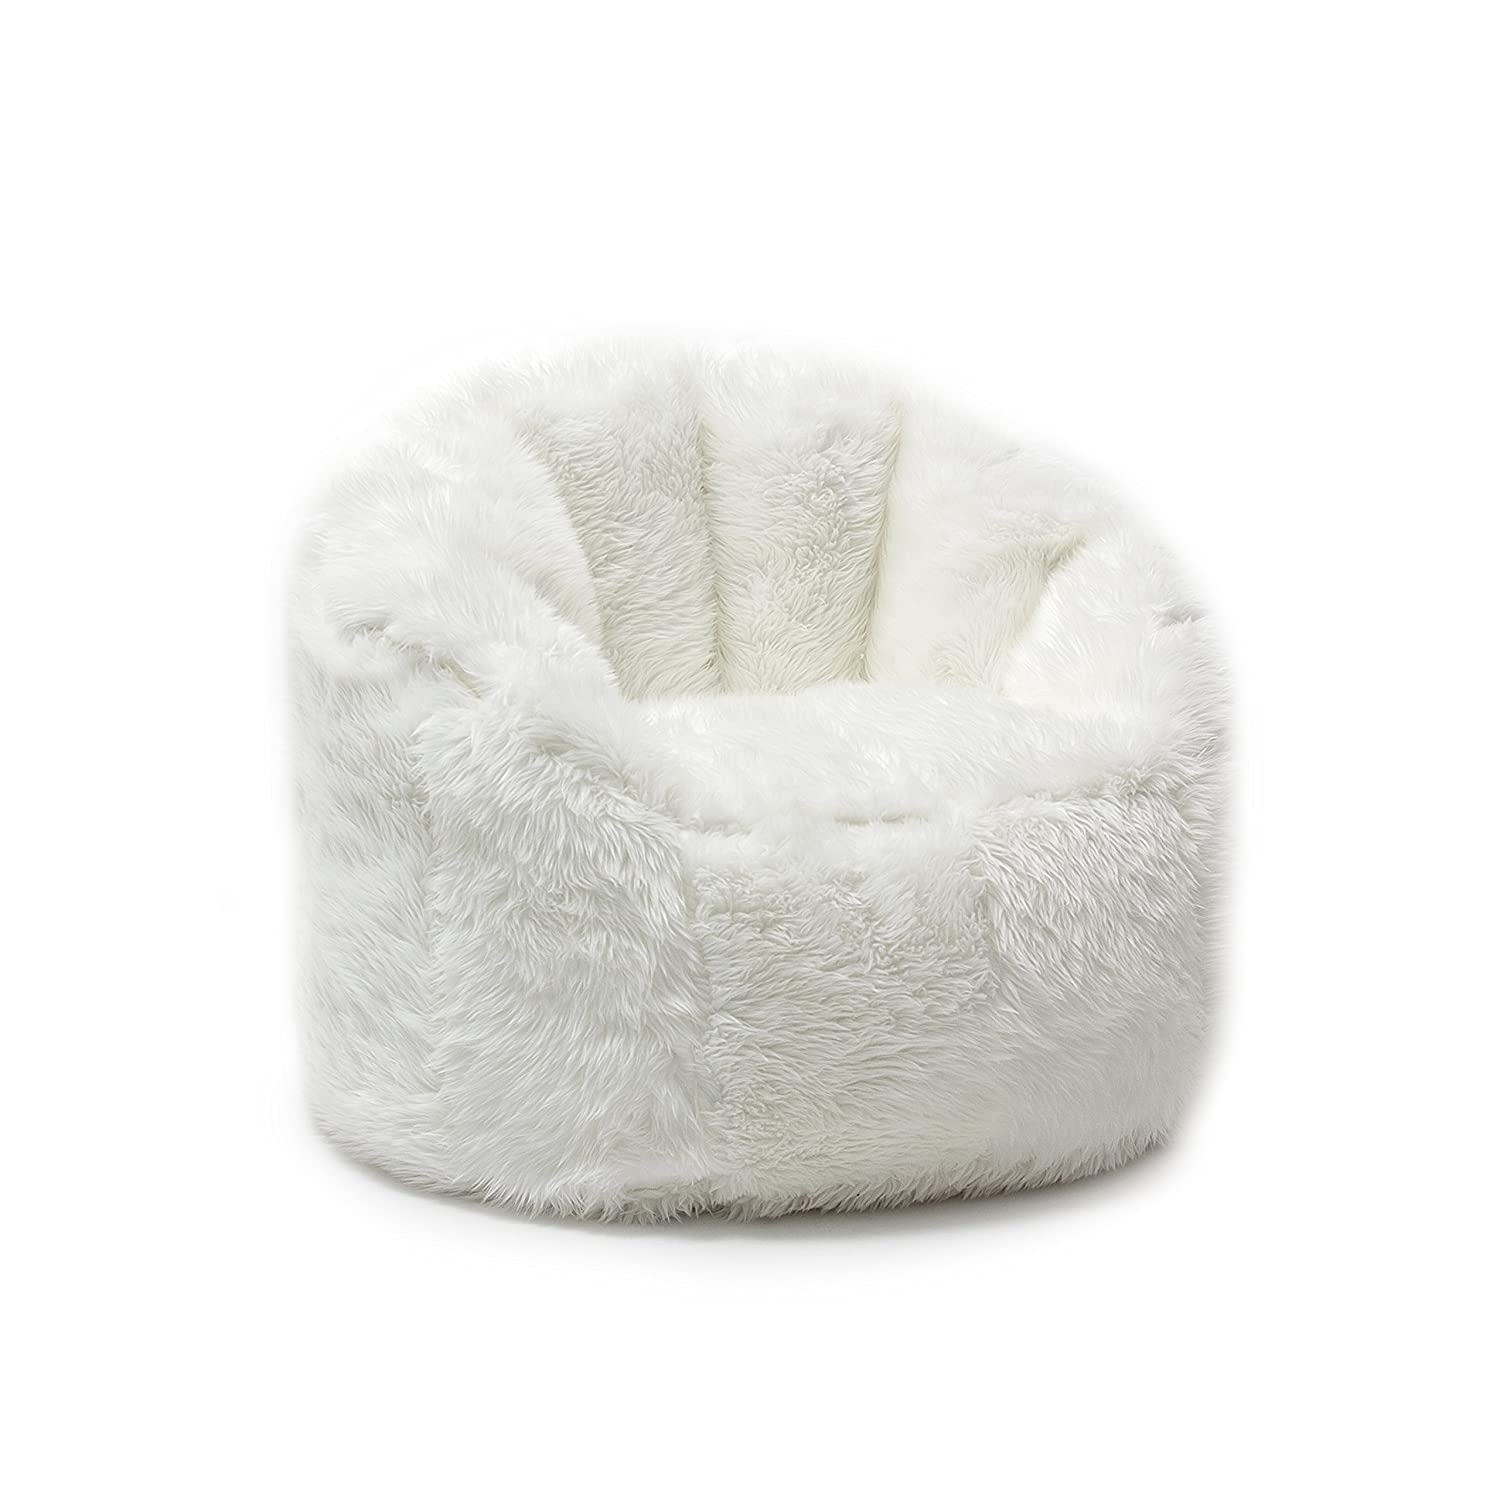 bean bag chair for adults white fluffy furry shaggy teens kids dorm room bedroom ebay. Black Bedroom Furniture Sets. Home Design Ideas